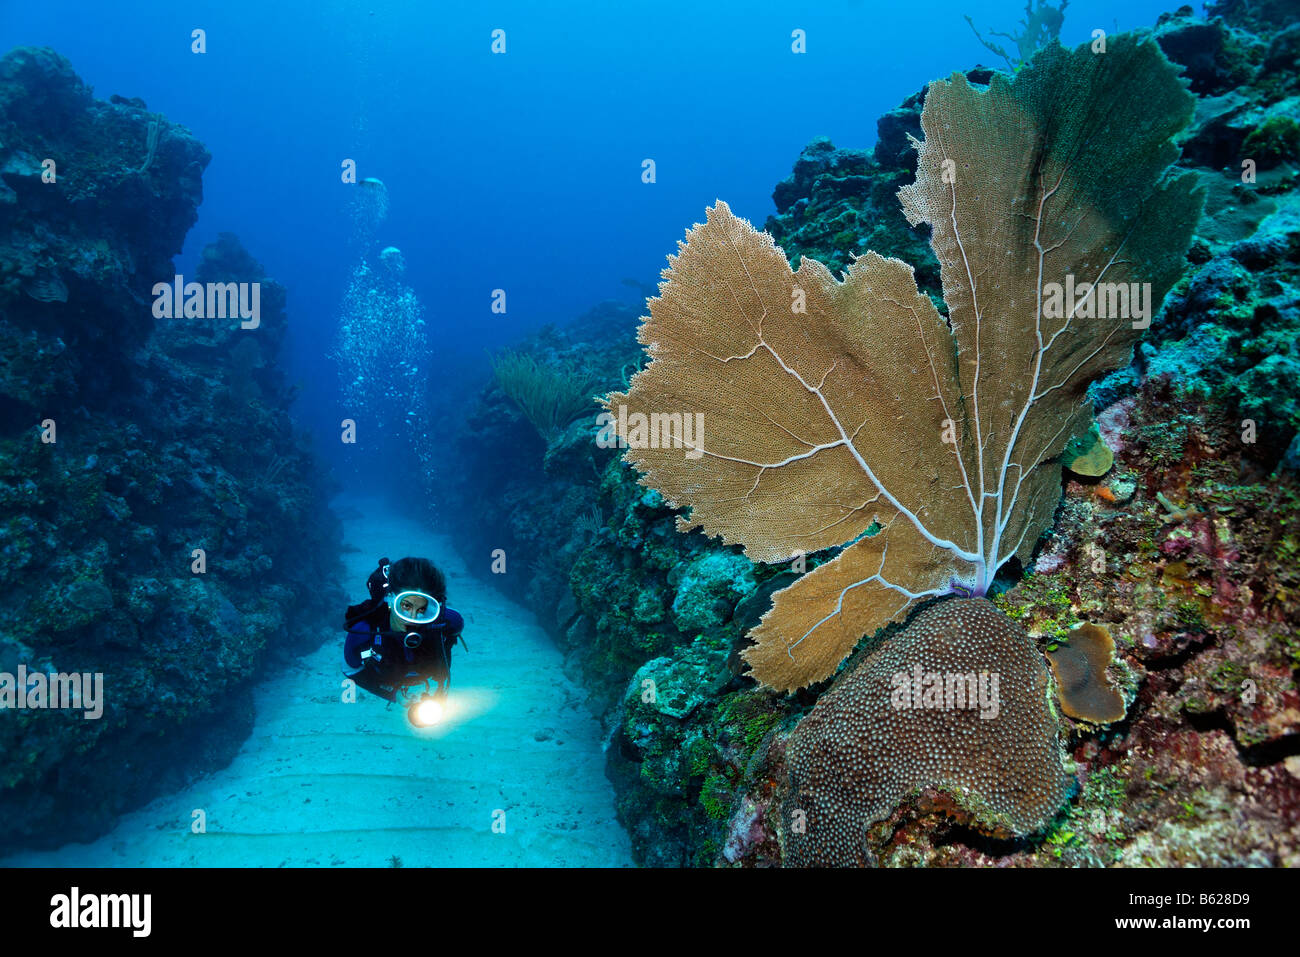 Scuba diver carrying a torch swims through a sandy bottomed channel between coral reefs and observes a Sea Fan coral - Stock Image